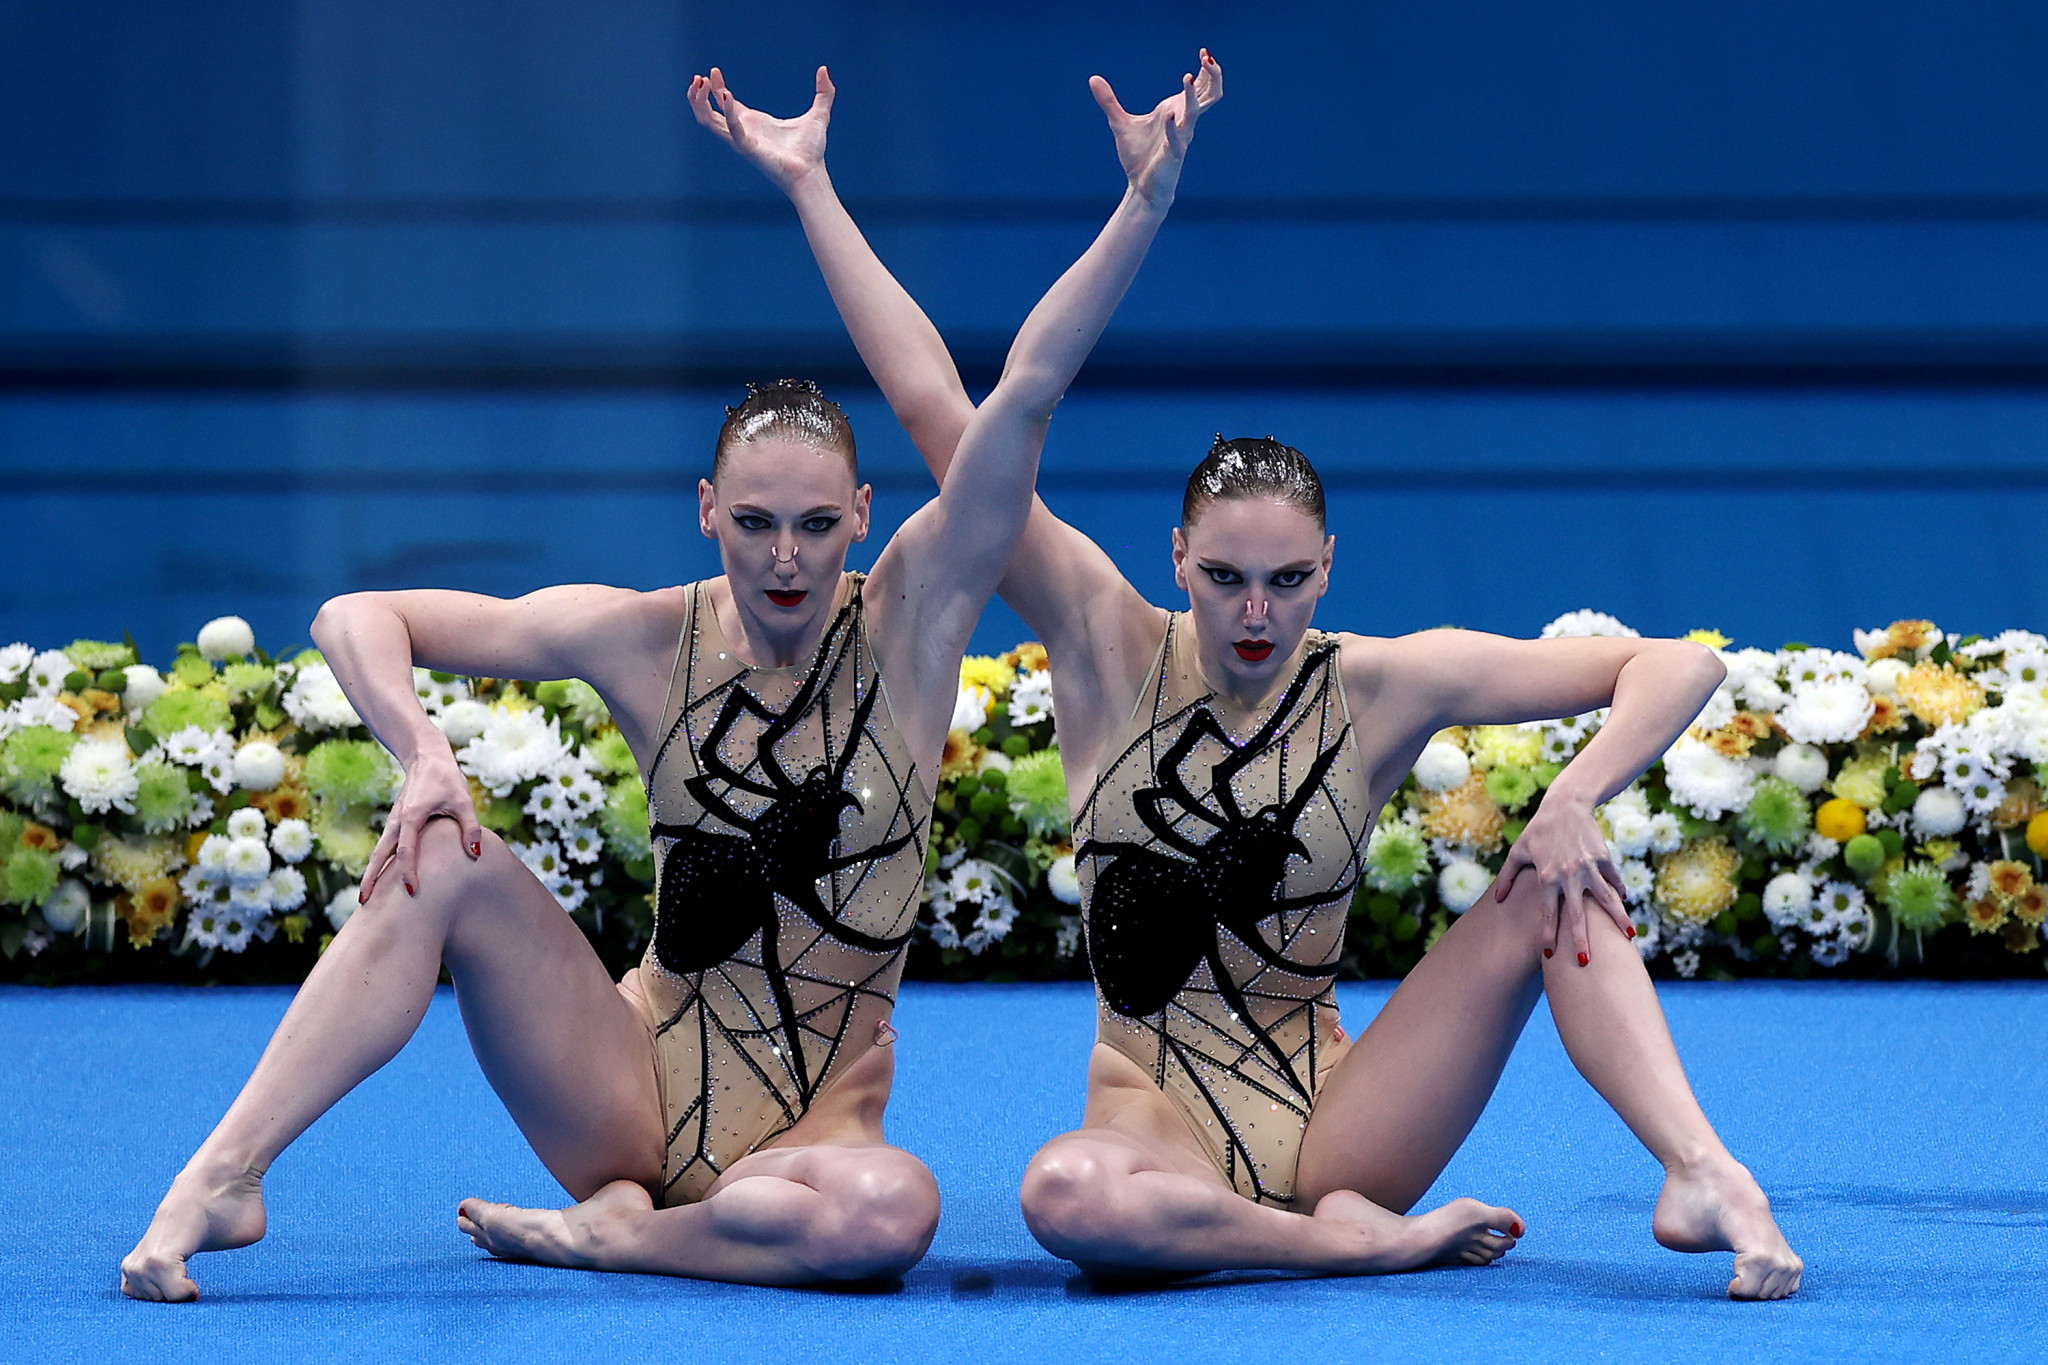 Kolesnichenko and Romashina were both named in the Russia line-up for the artistic swimming team competition ©Getty Images